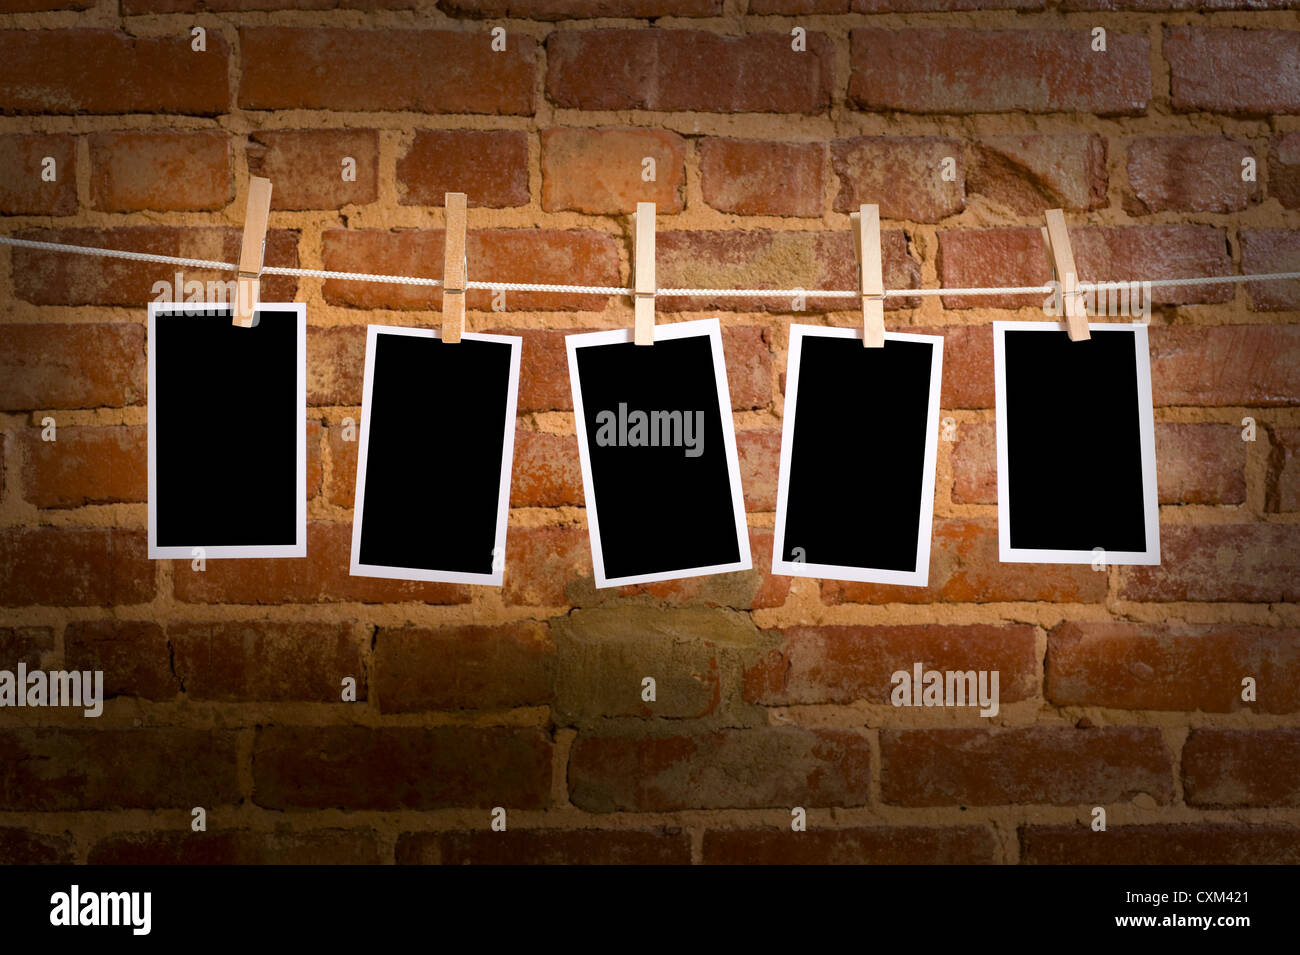 pictures or photographs on a rope with clothespins, with clipping path for images, in front of a brick wall - Stock Image